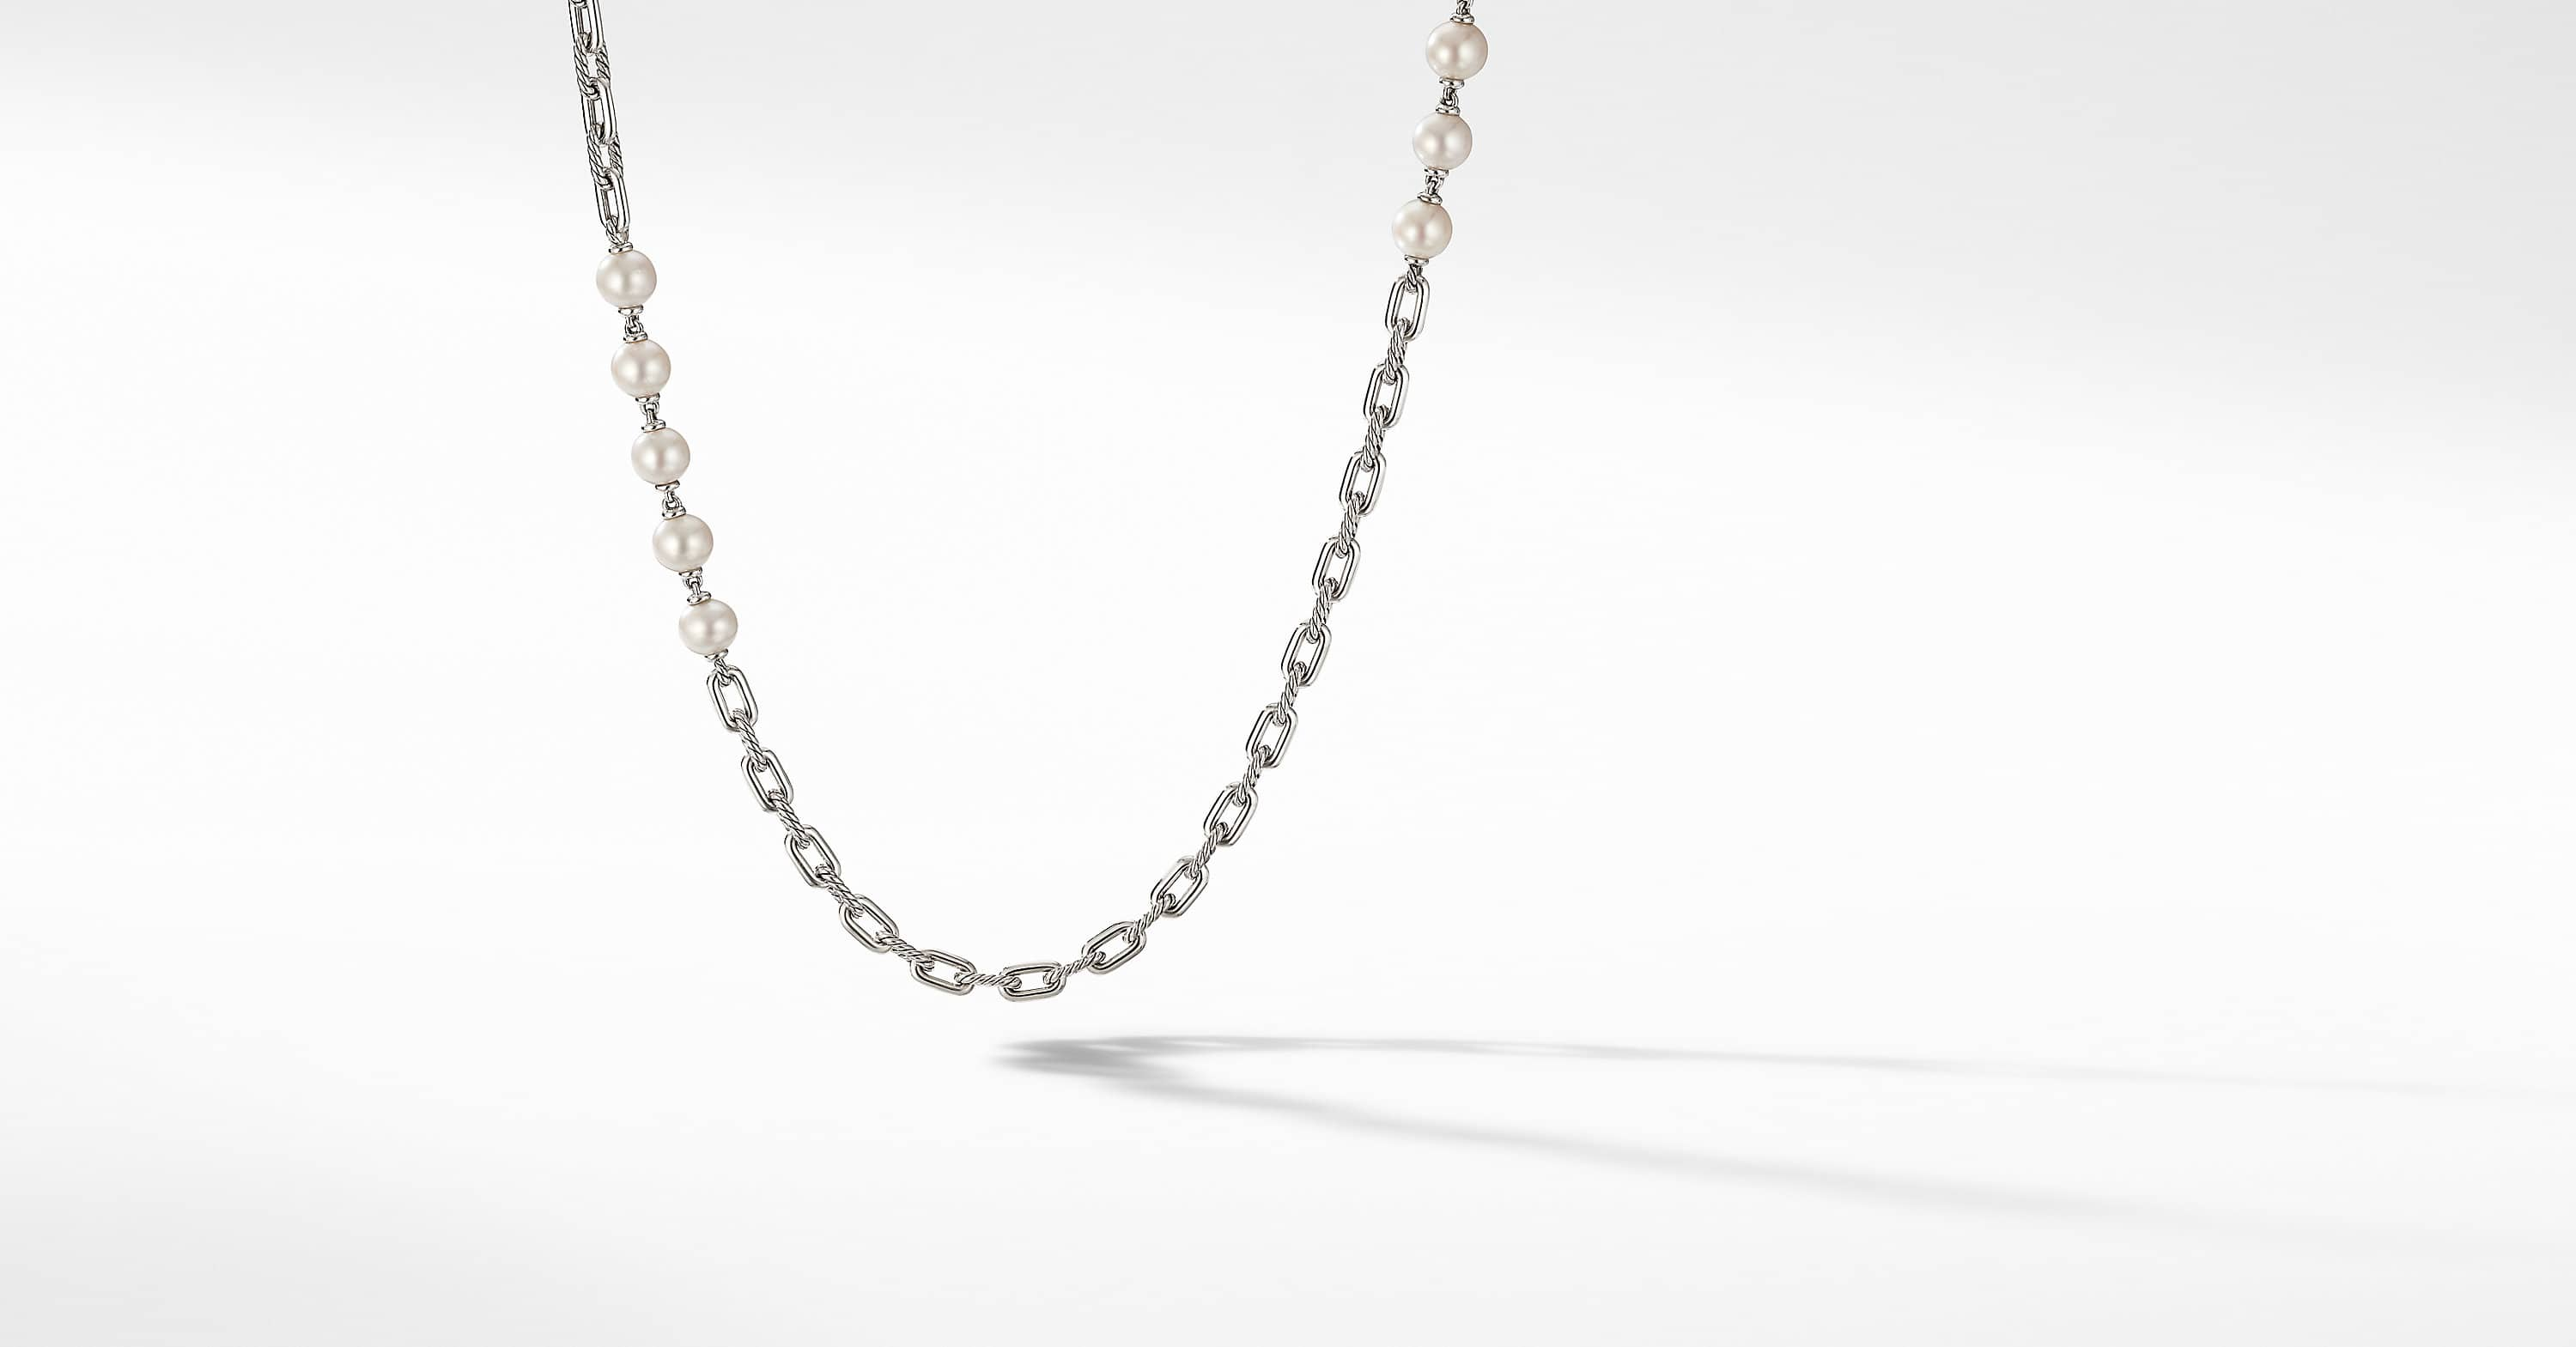 Collier chaîne DY Madison Pearl, 6,4mm